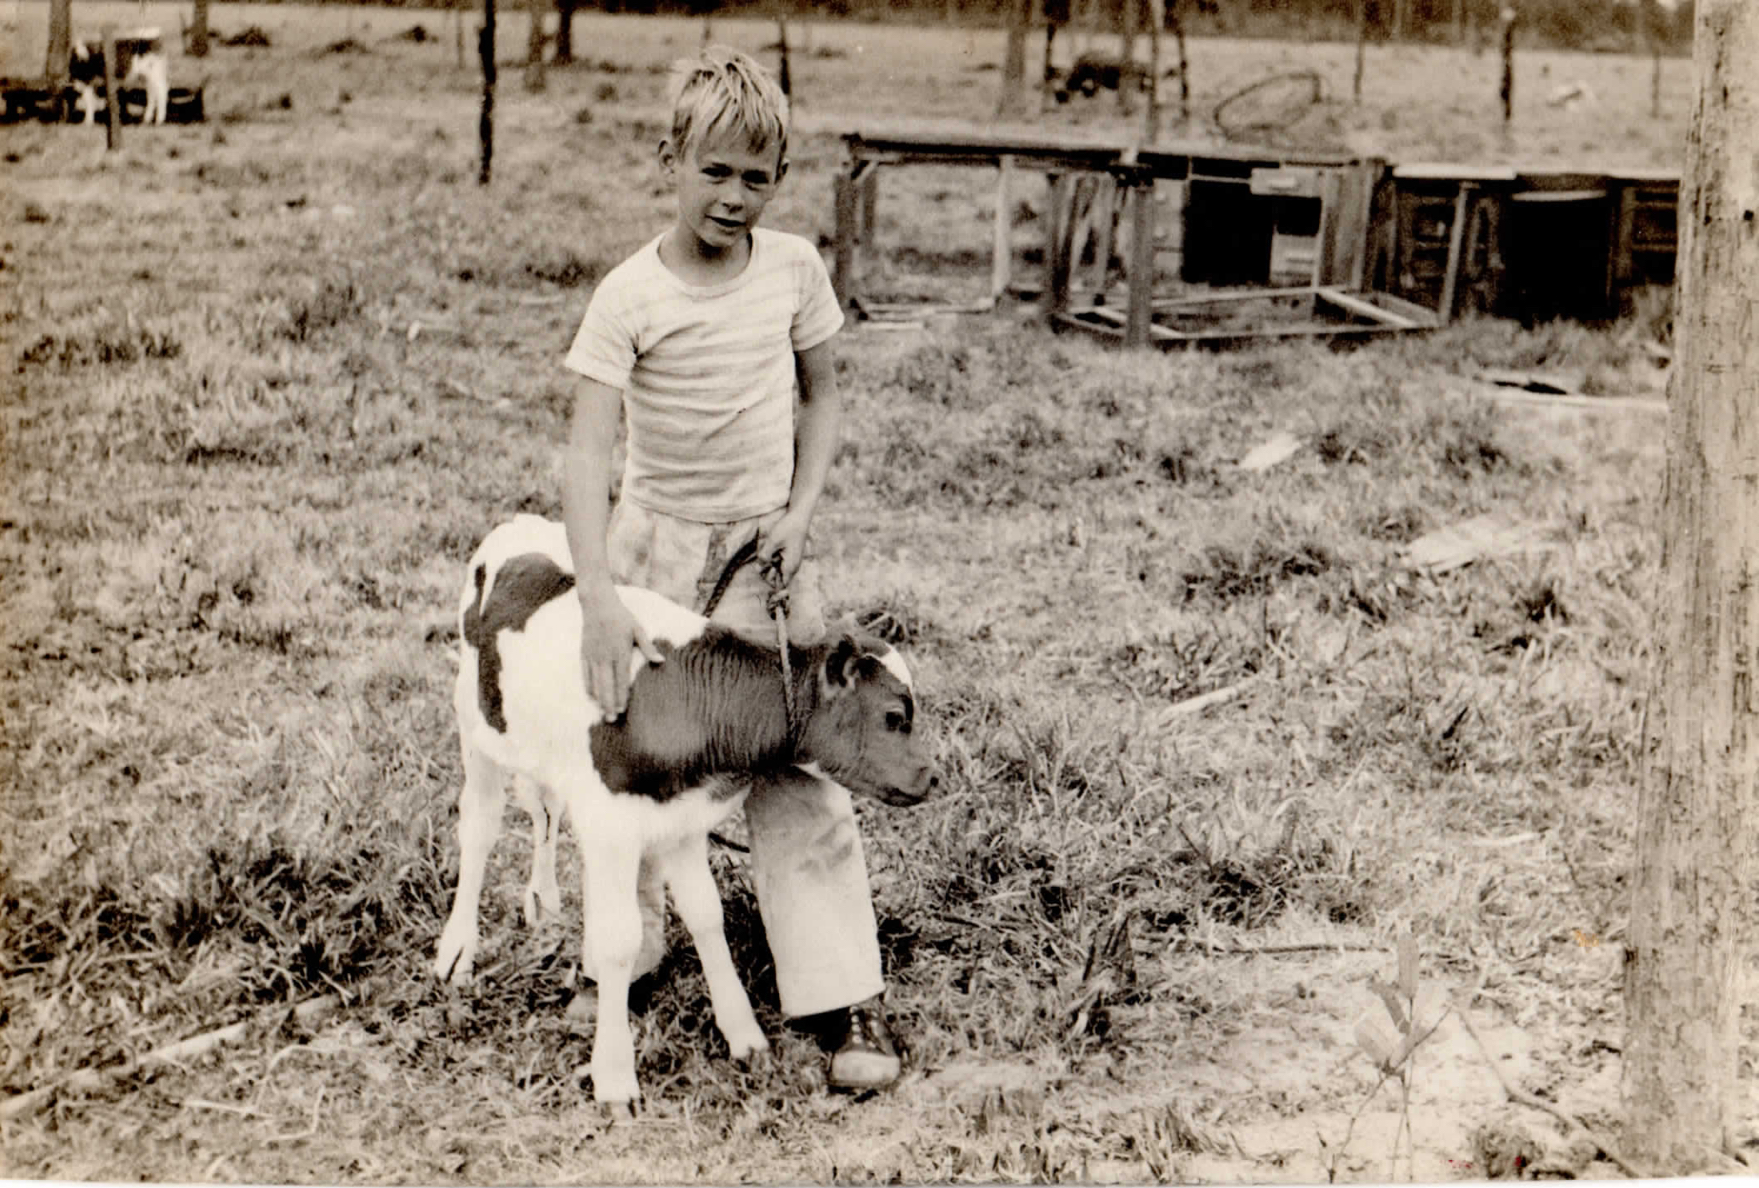 On the farm: my Dad as a young boy